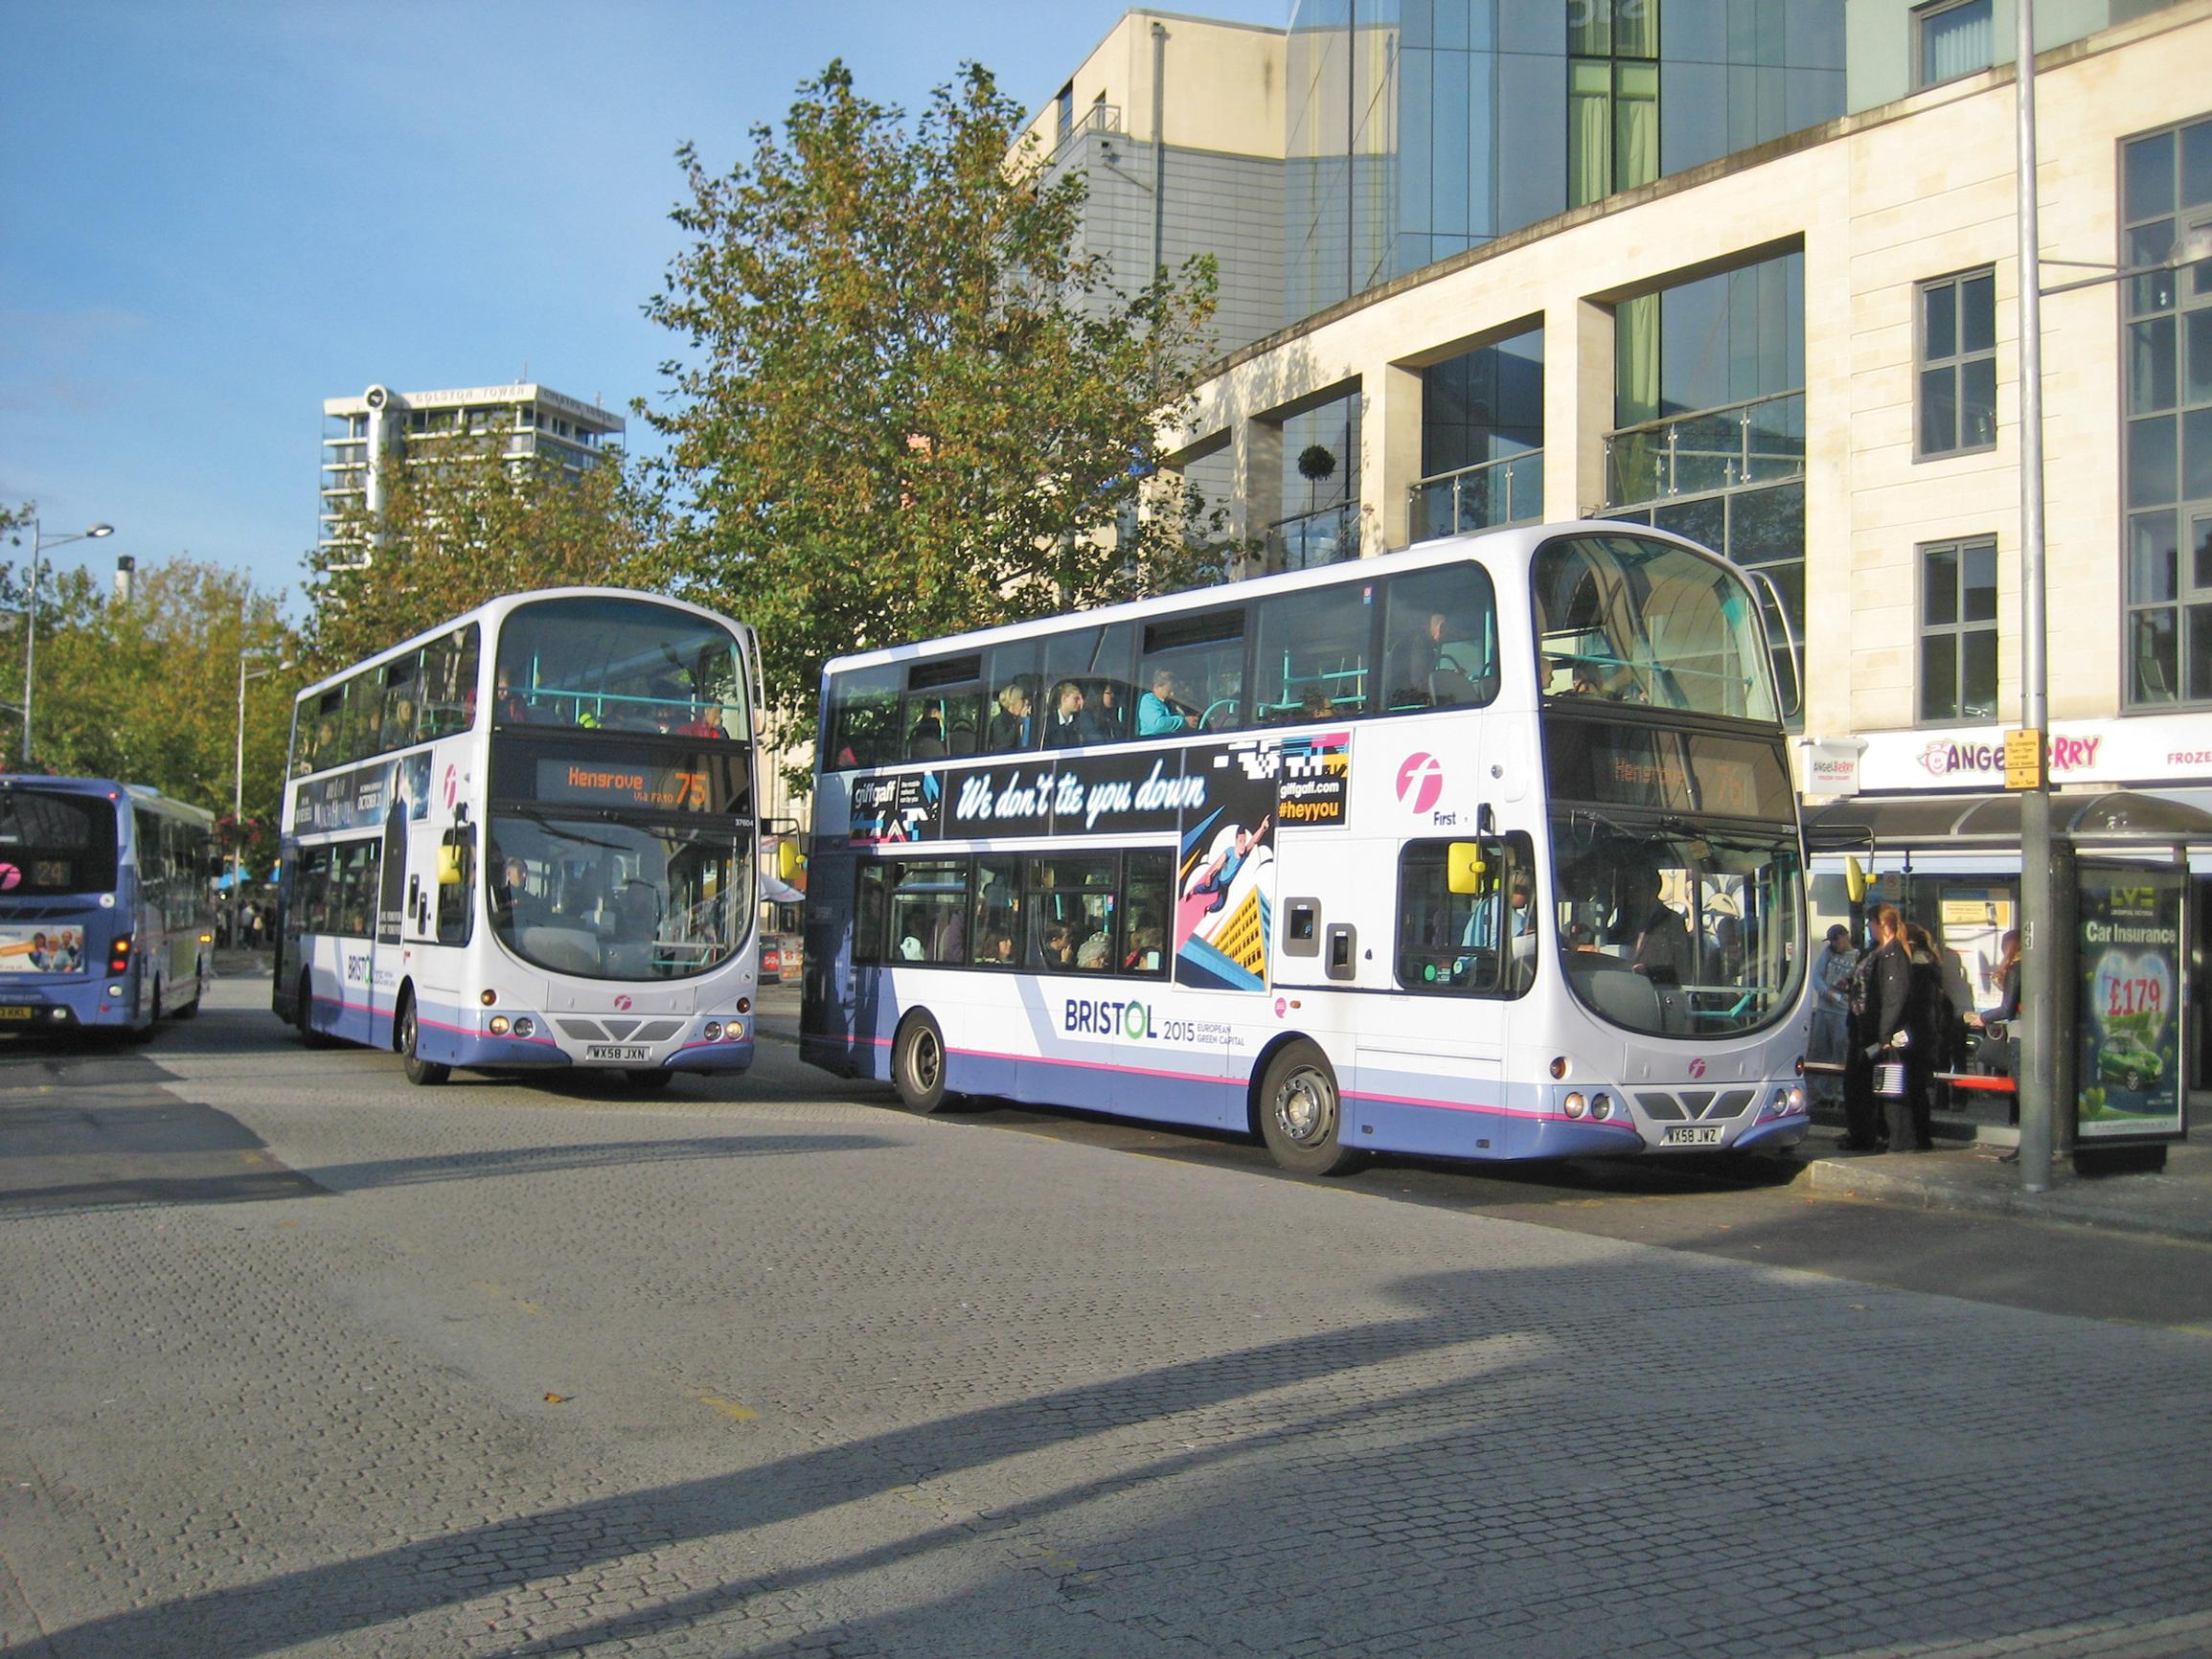 Operators may seek subsidy to operate Bristol BRT routes